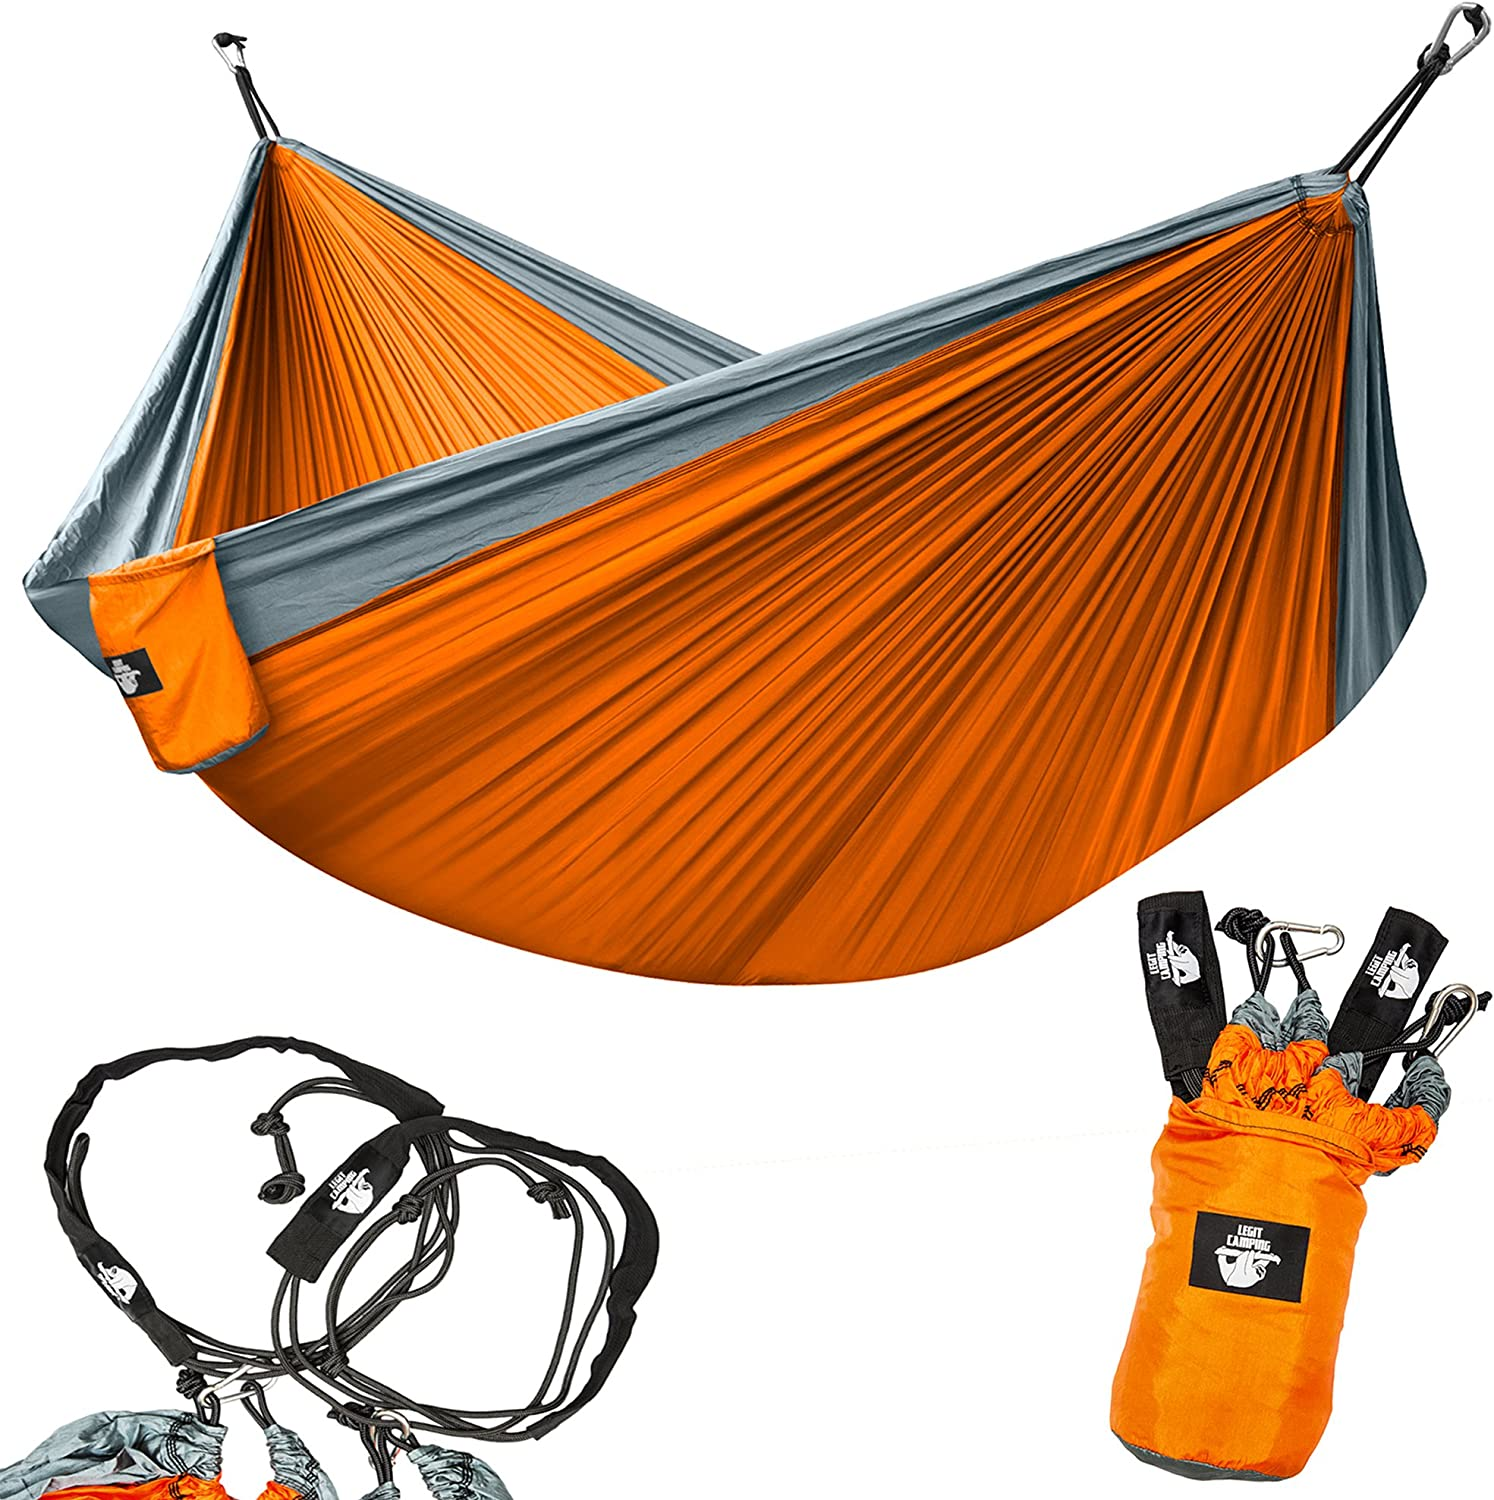 Legit Camping Portable Double Hammock - Grey/Orange - 400 lb Weight Capacity